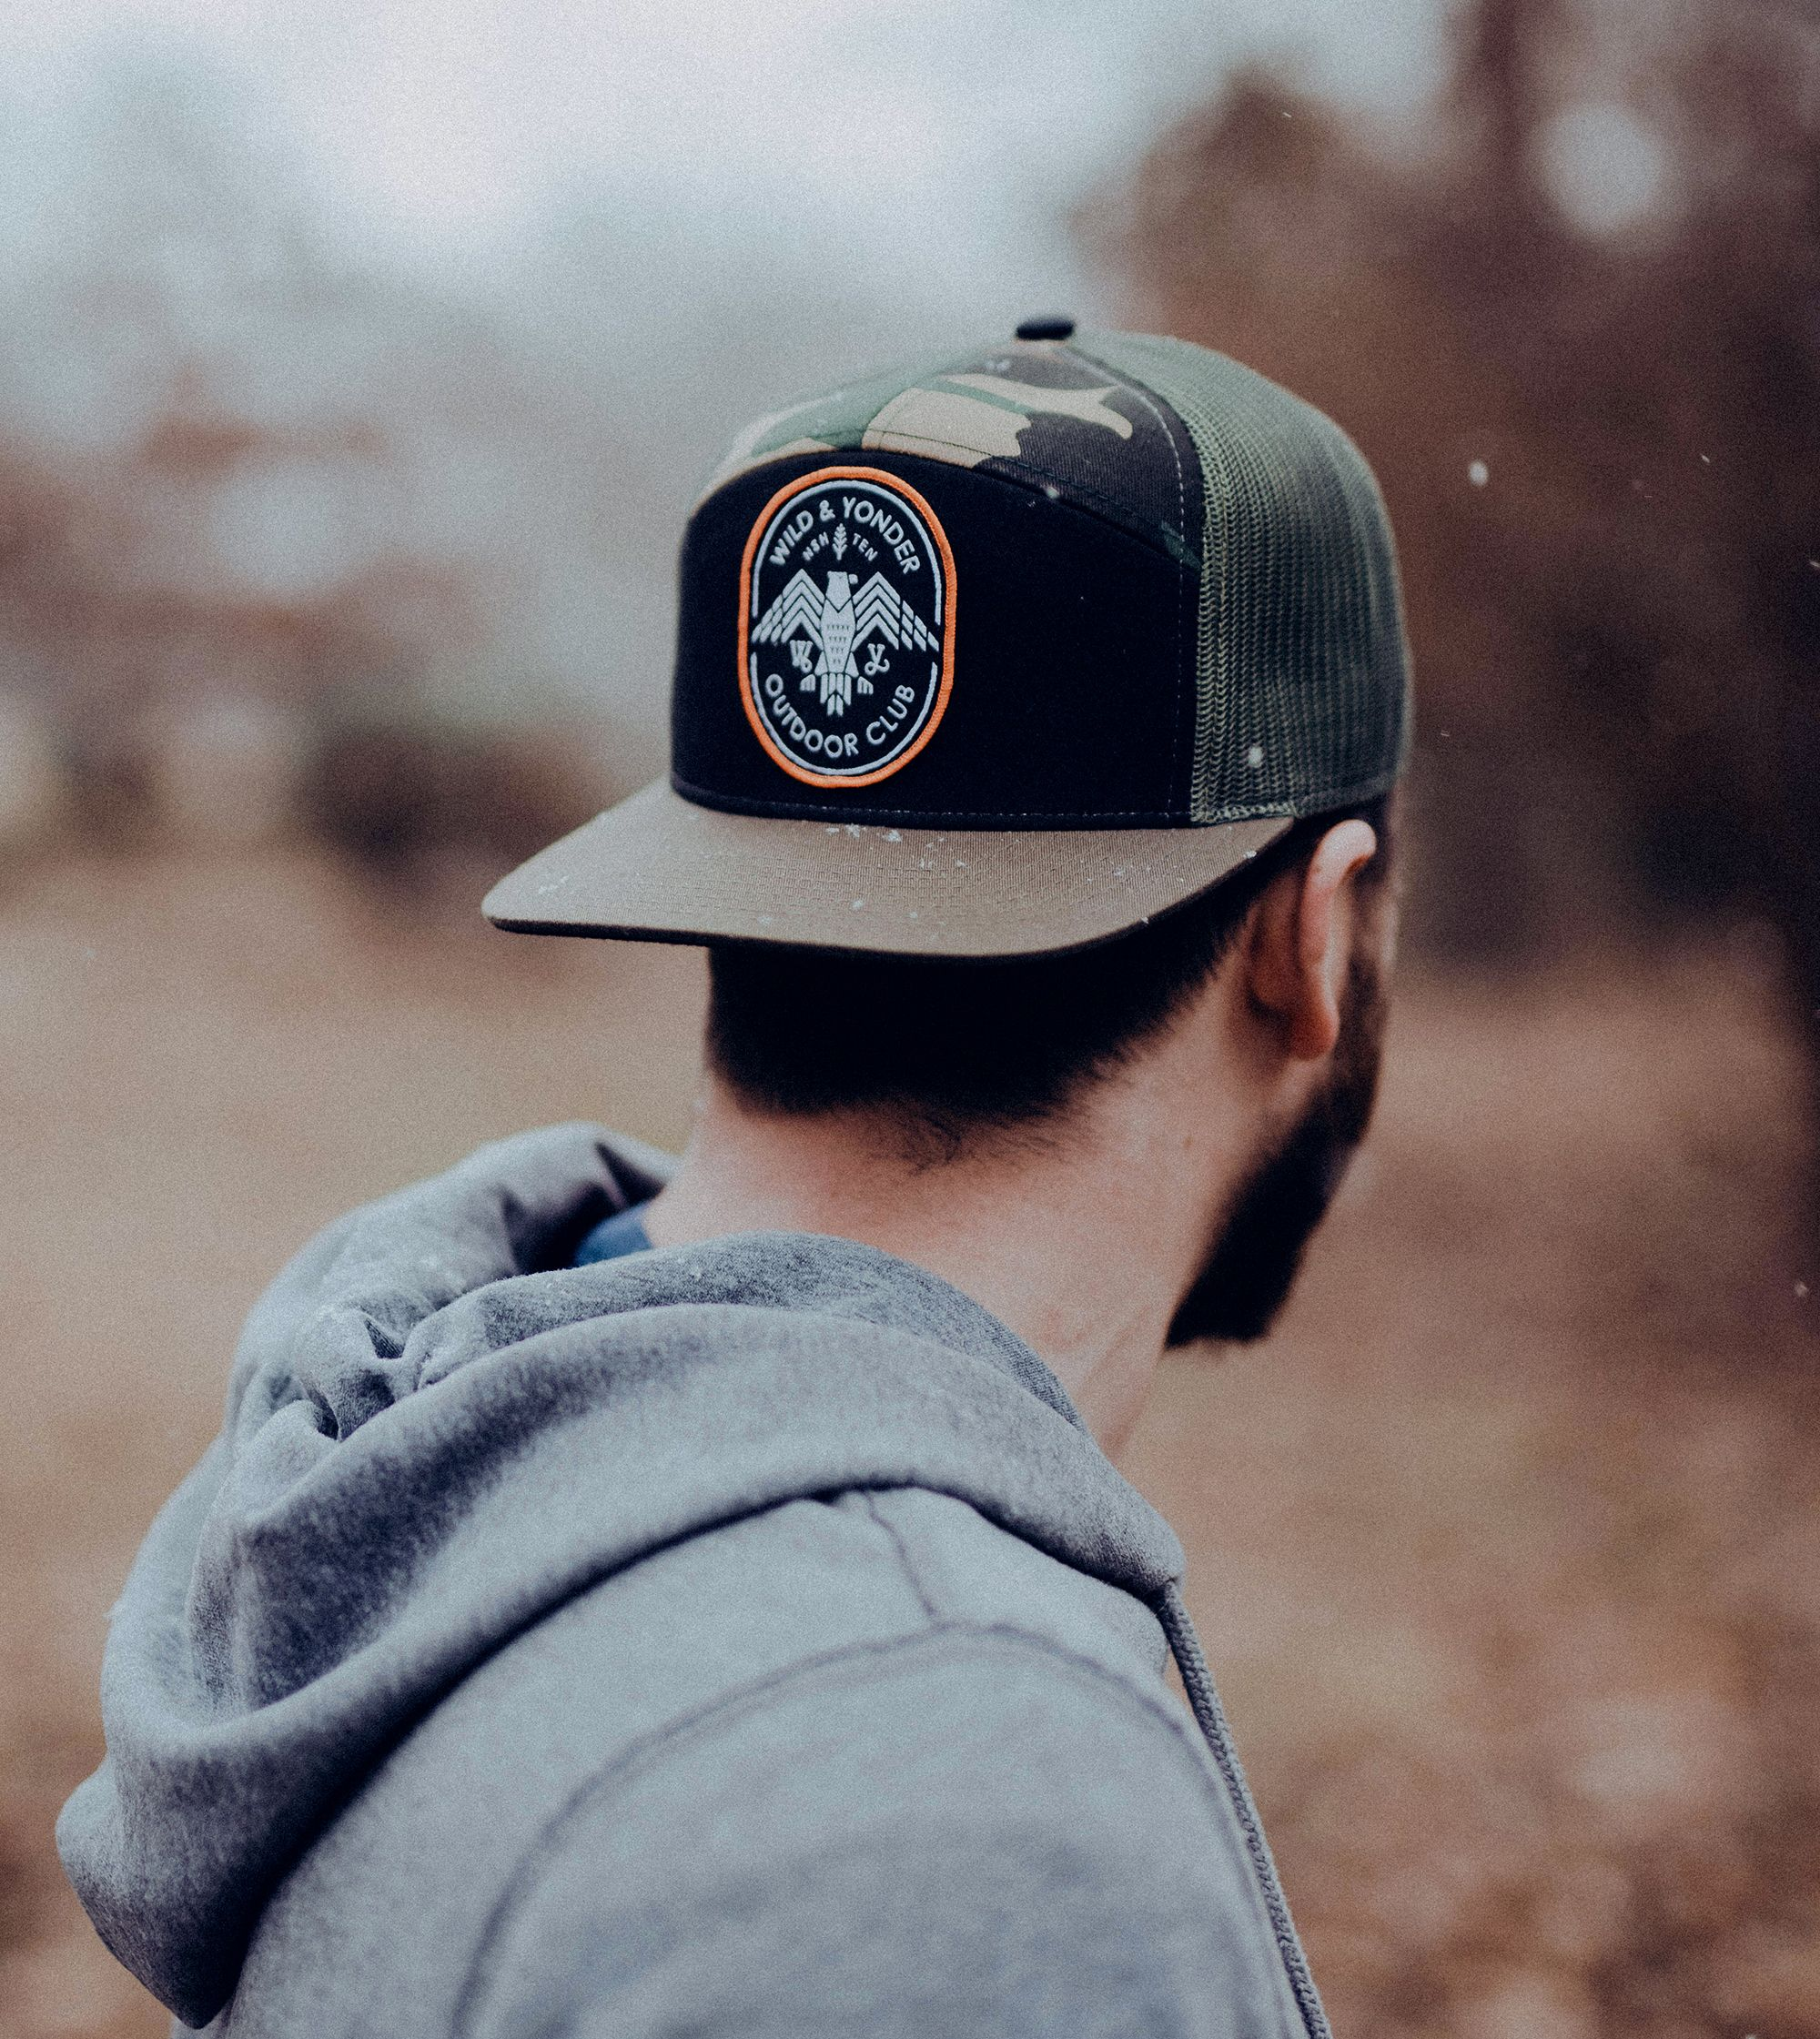 9f736a541 The Camo 7-Panel Trucker. Cotton twill & mesh, with a flat bill ...